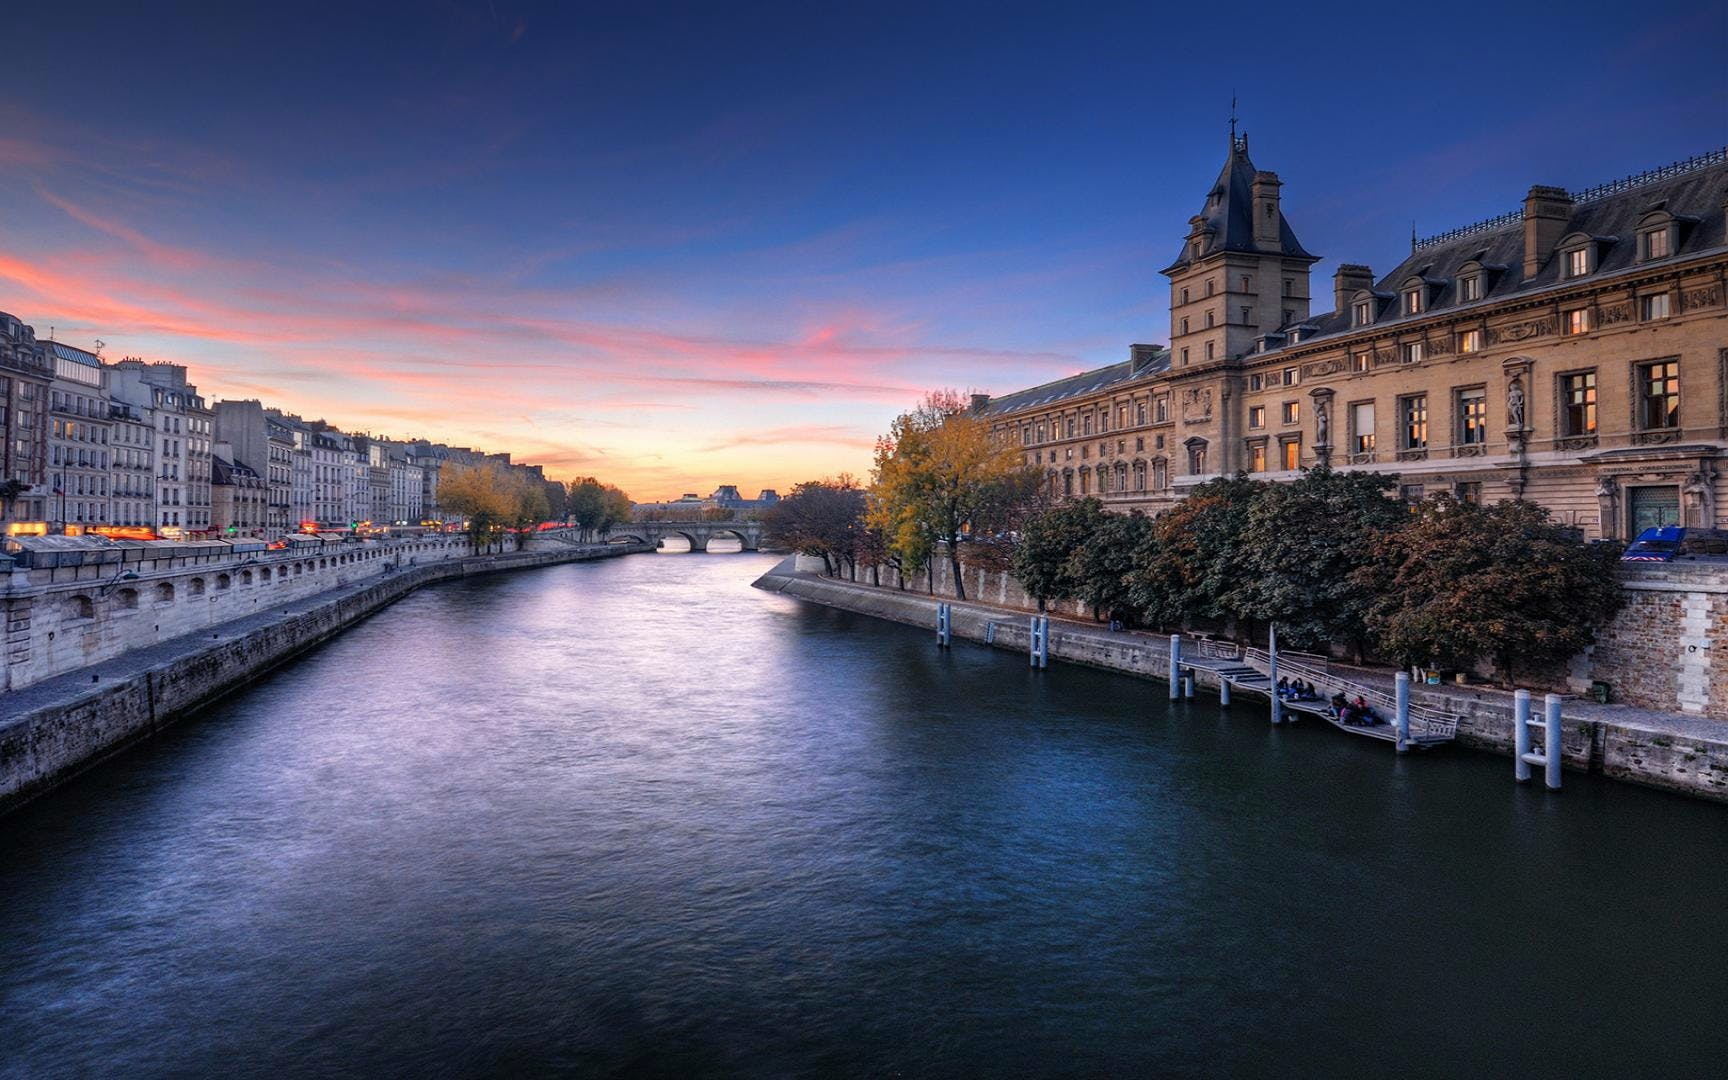 Skip The Line Tickets to Orsay Museum + Seine River Cruise